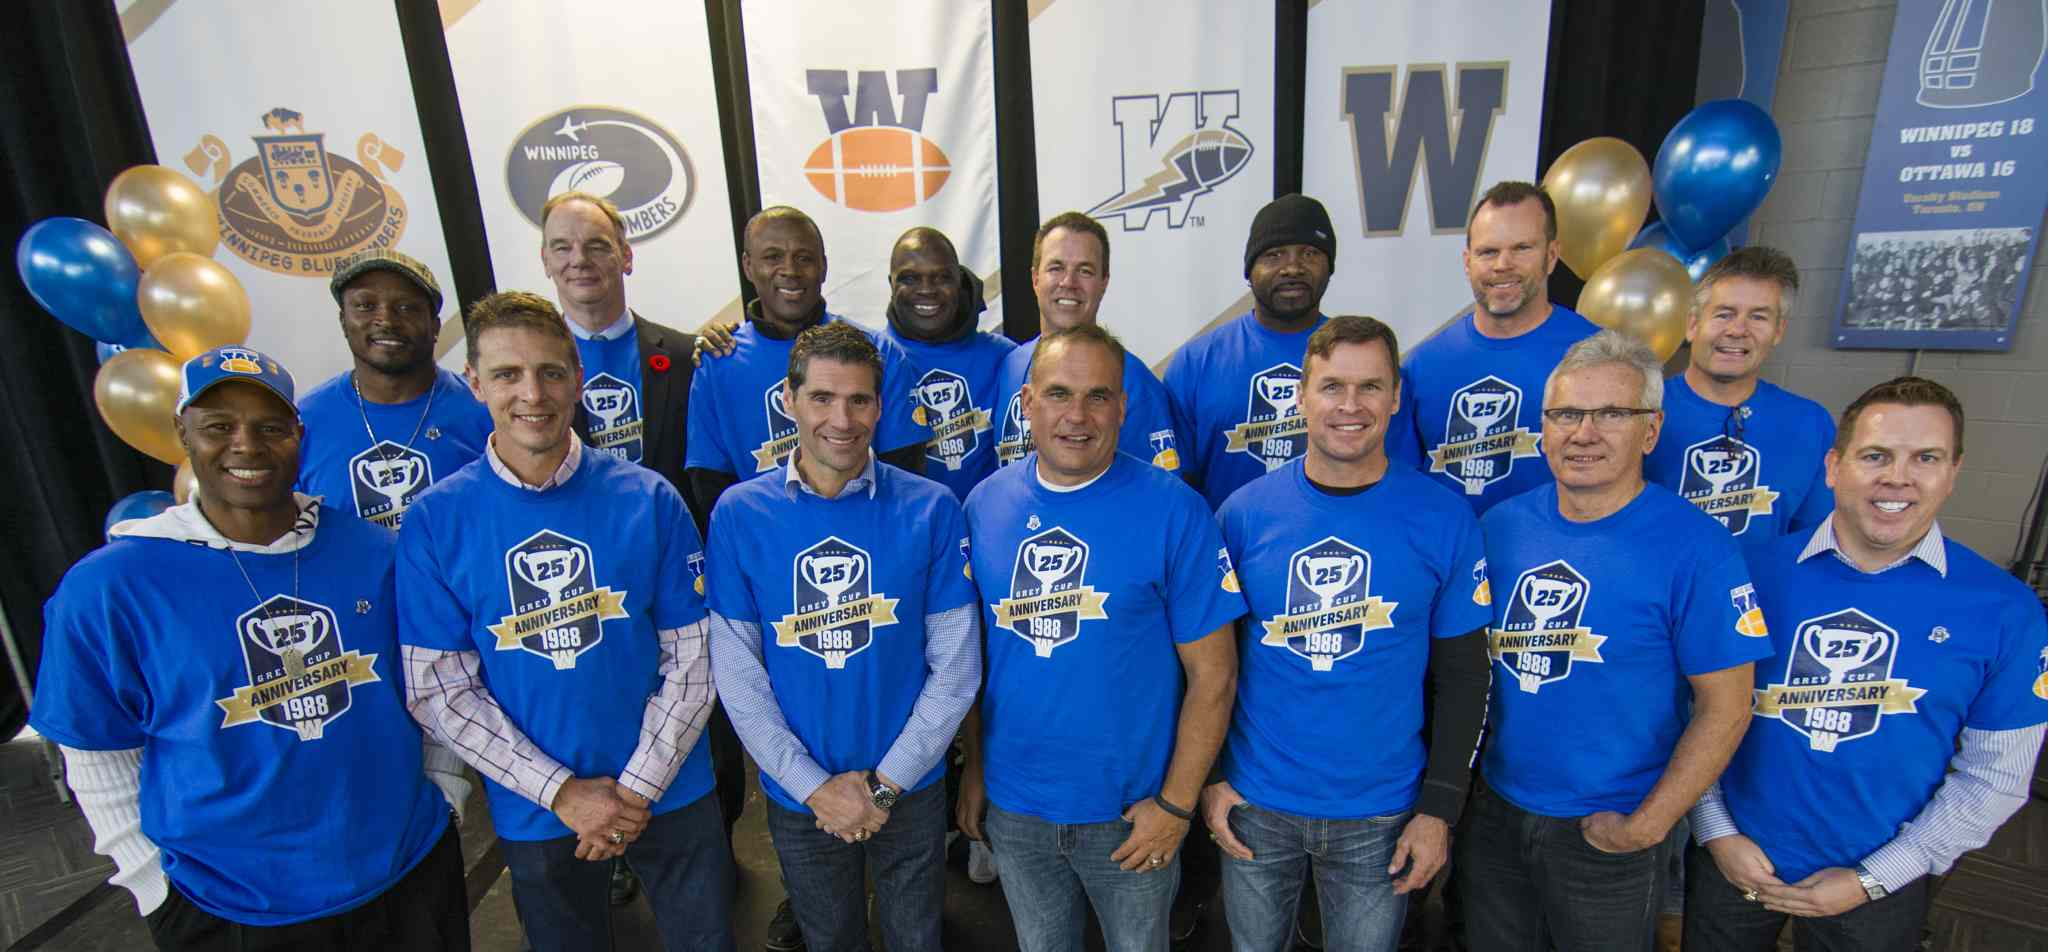 Members of the 1988 Grey Cup champion Winnipeg Blue Bombers pose for a photo at the Pinnacle Club at Investors Group Field Friday afternoon.